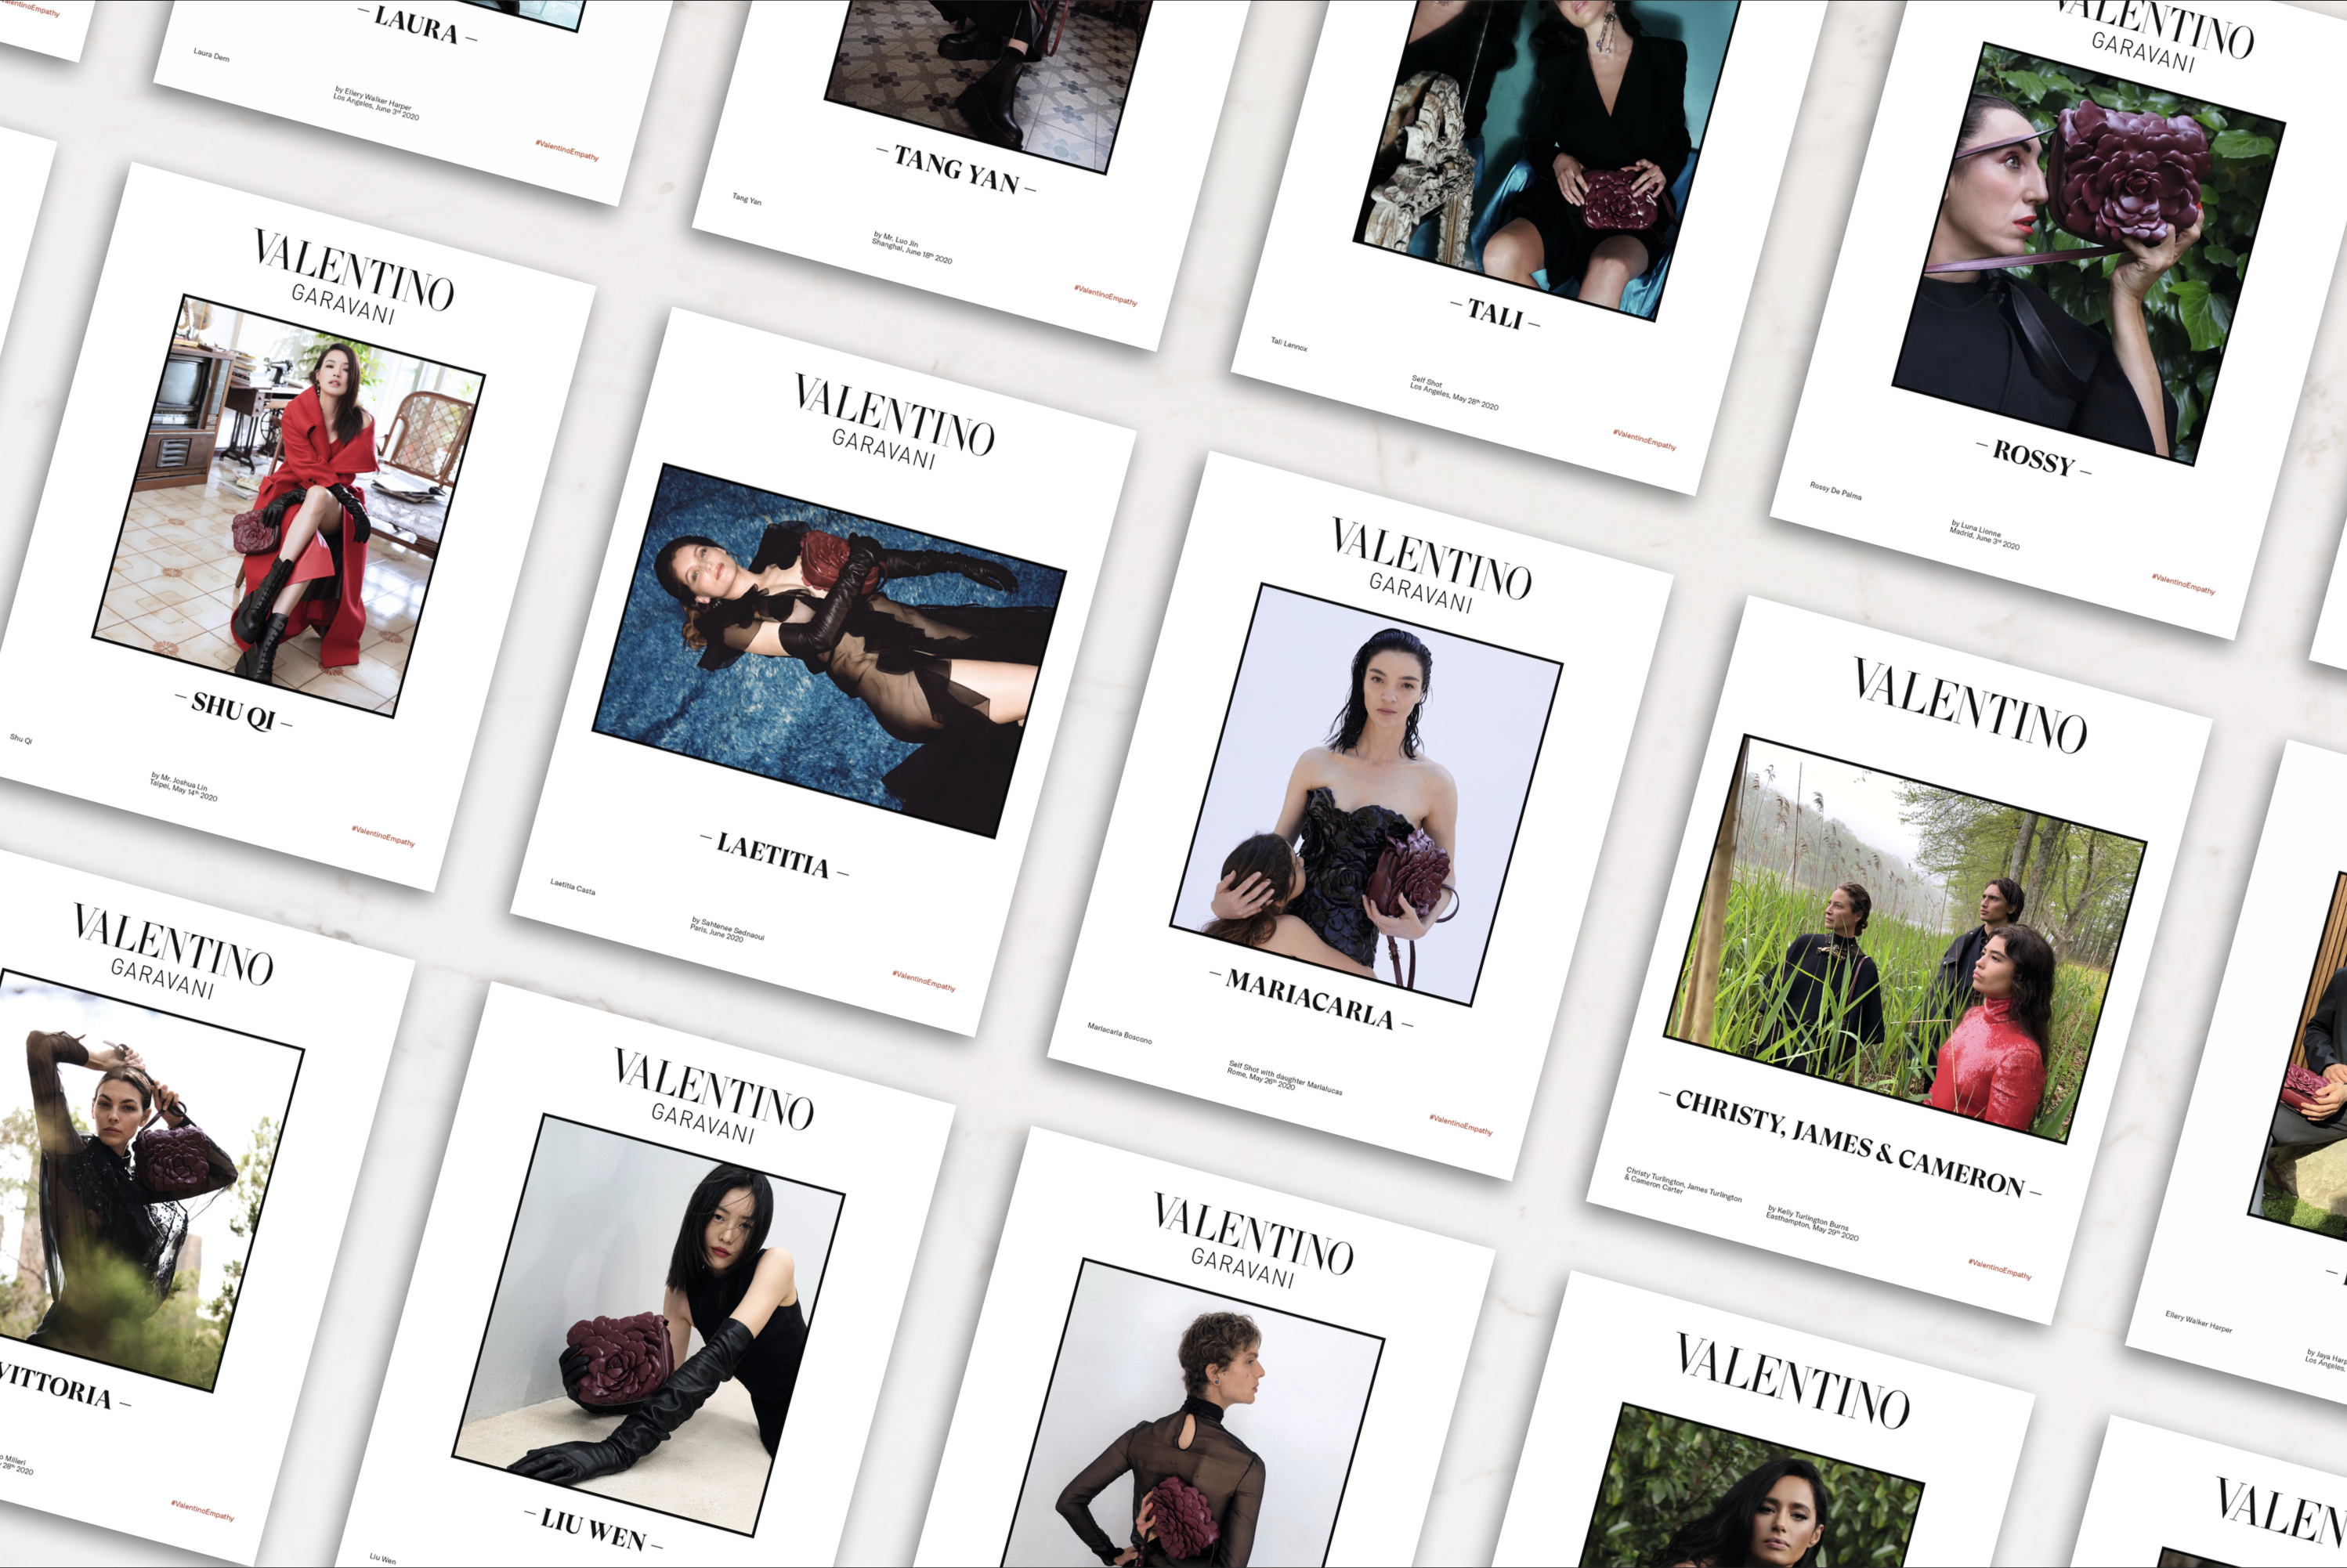 Valentino Empathy Fall 2020 Ad Campaign Photos